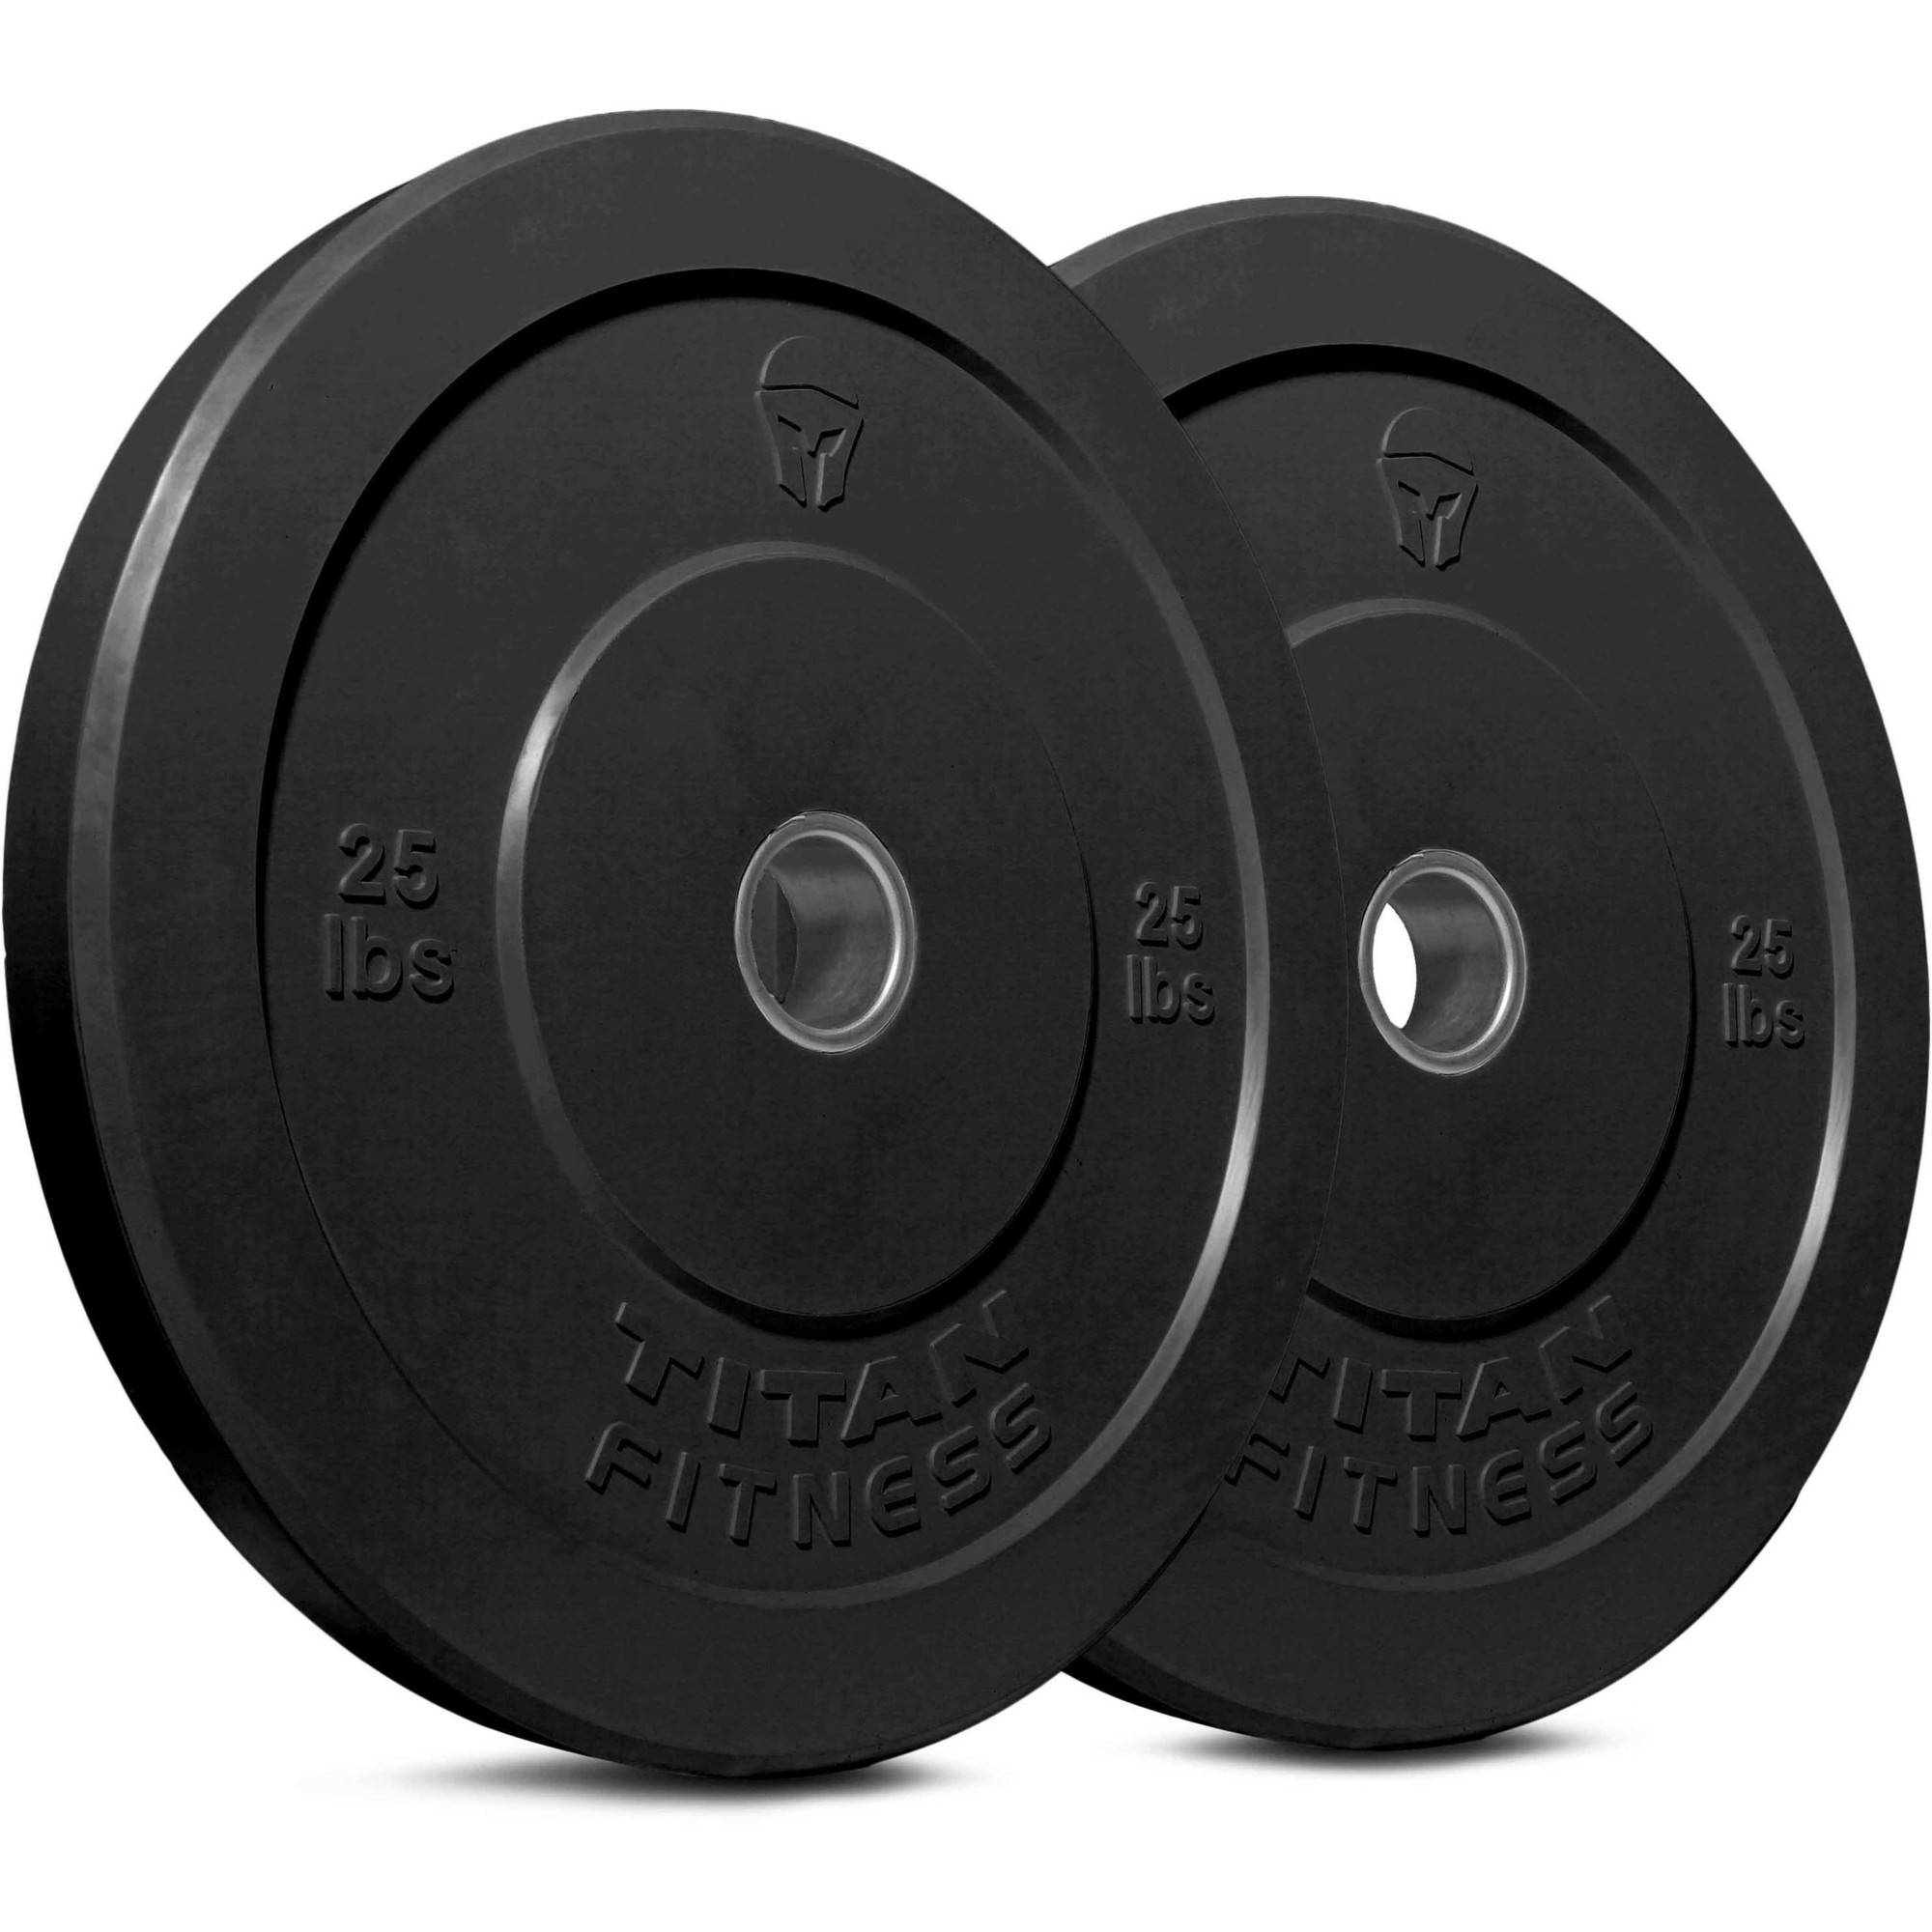 Titan Fitness Pair of 25 lb Olympic Bumper Plate Black Benchpress for Strength Training